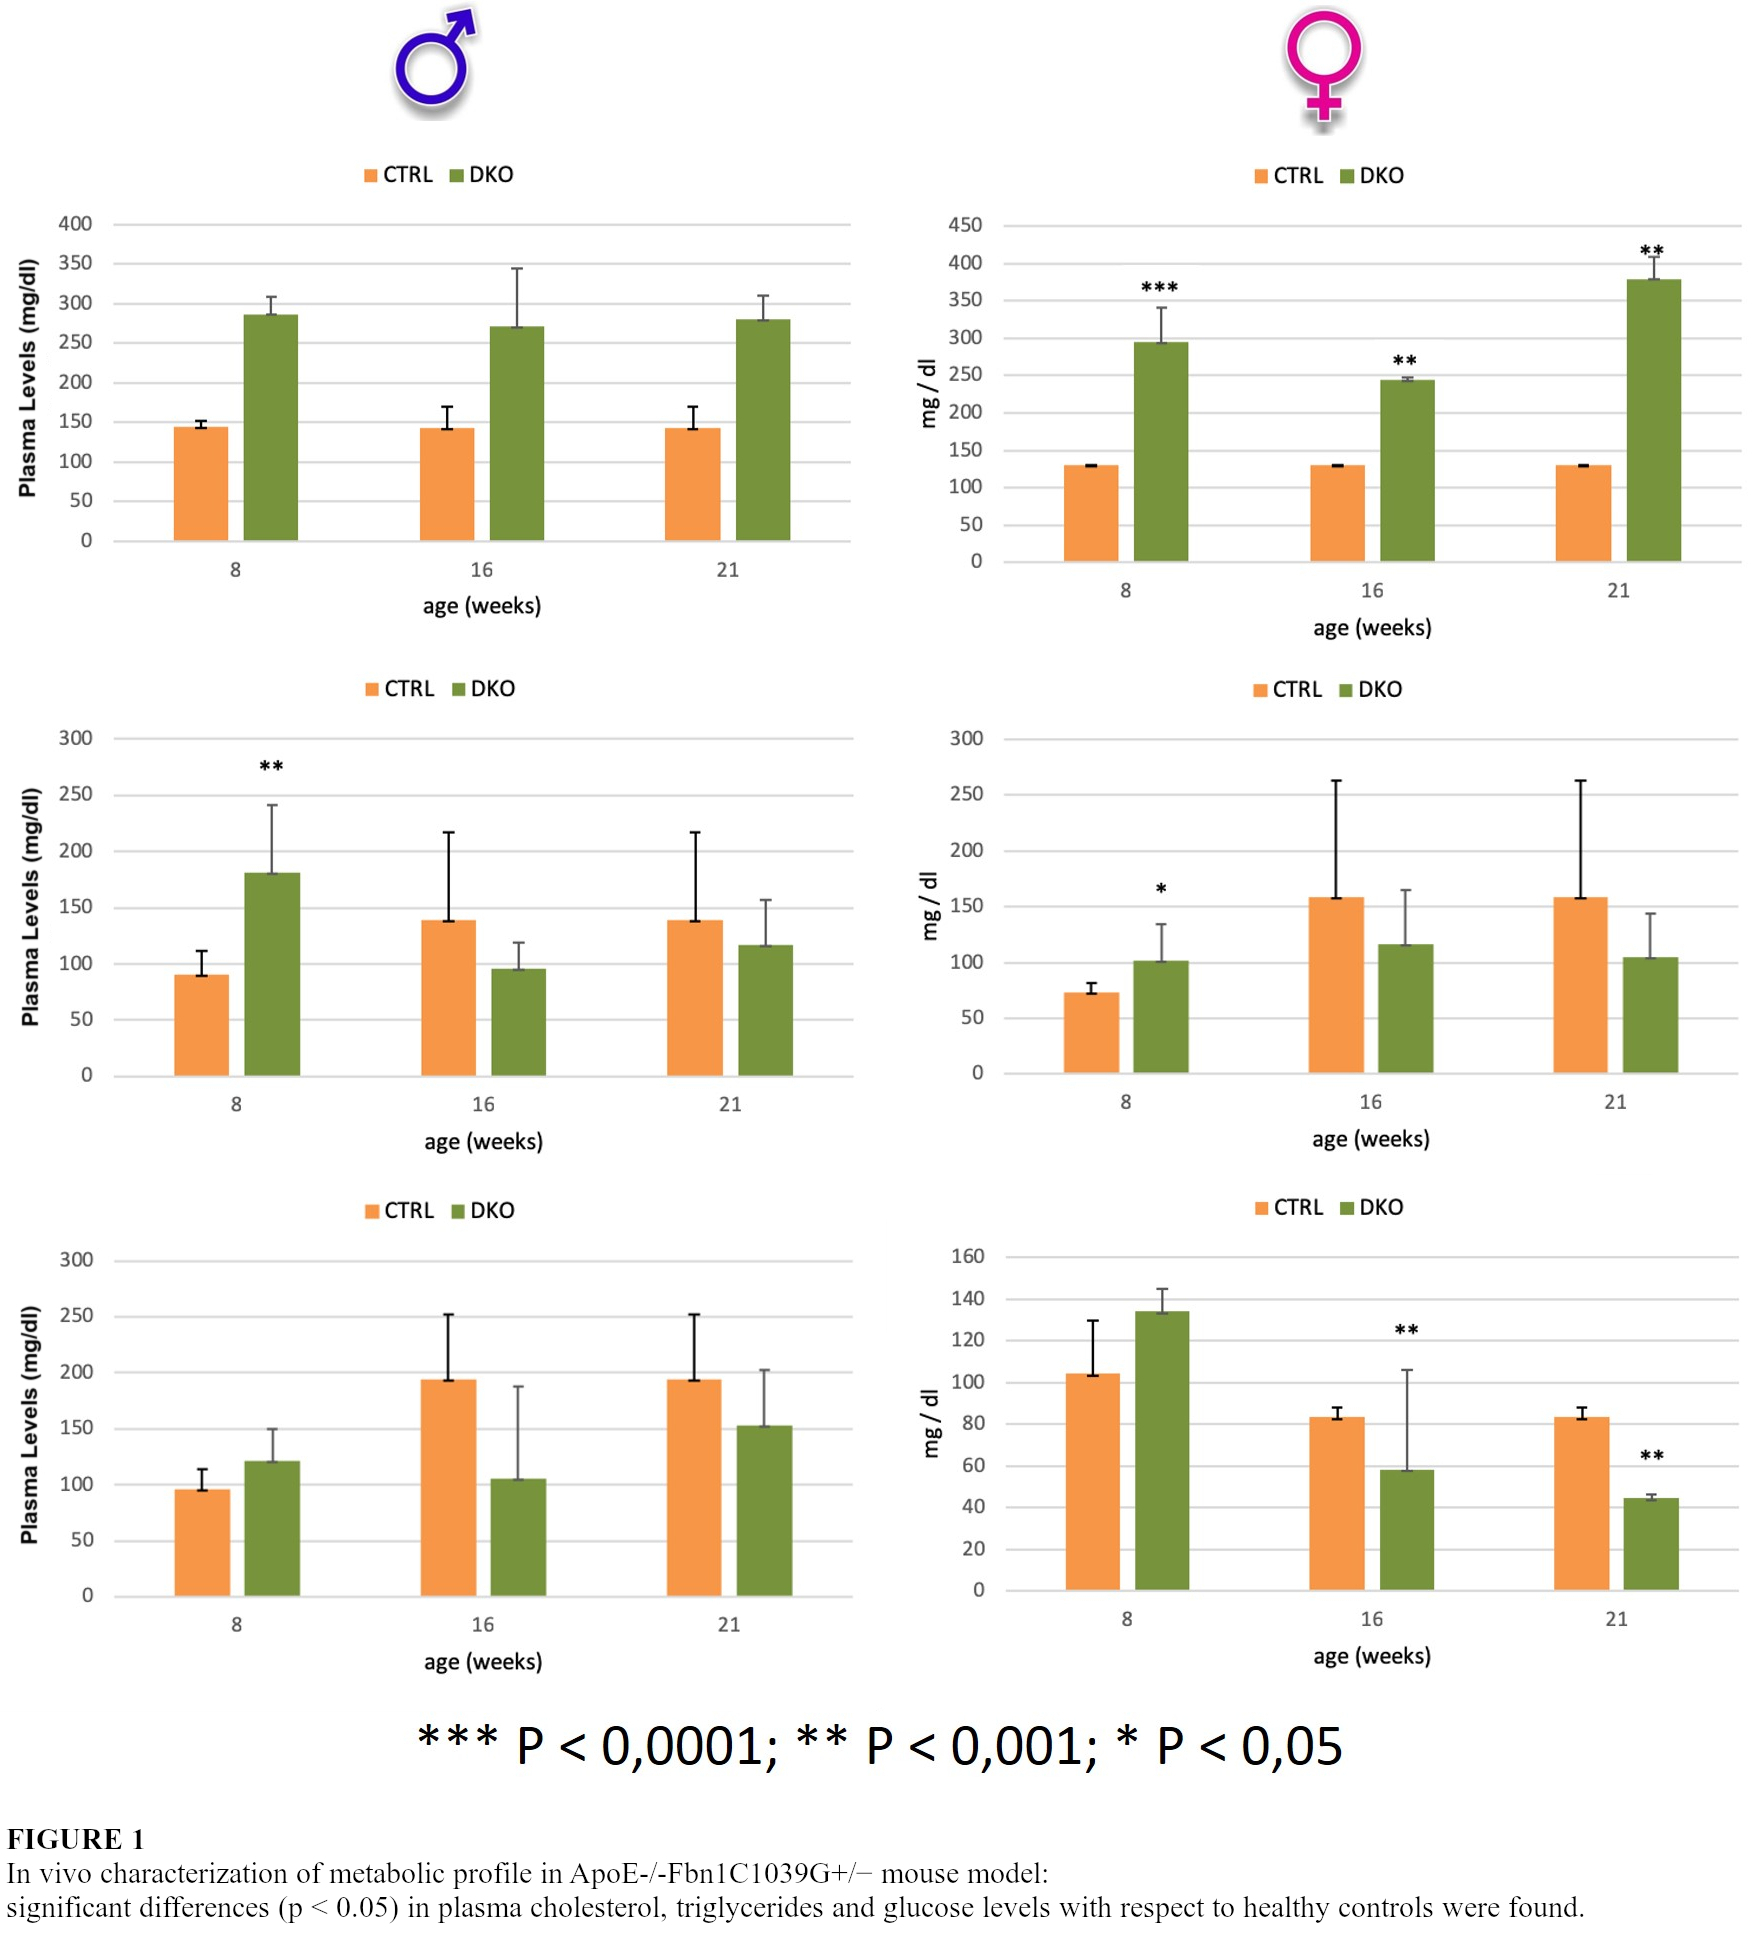 3fb60cb14c1 Figure 1 In vivo characterization of metabolic profile in  ApoE- -Fbn1C1039G+ - mouse model significant differences (p 0.05) in plasma  cholesterol